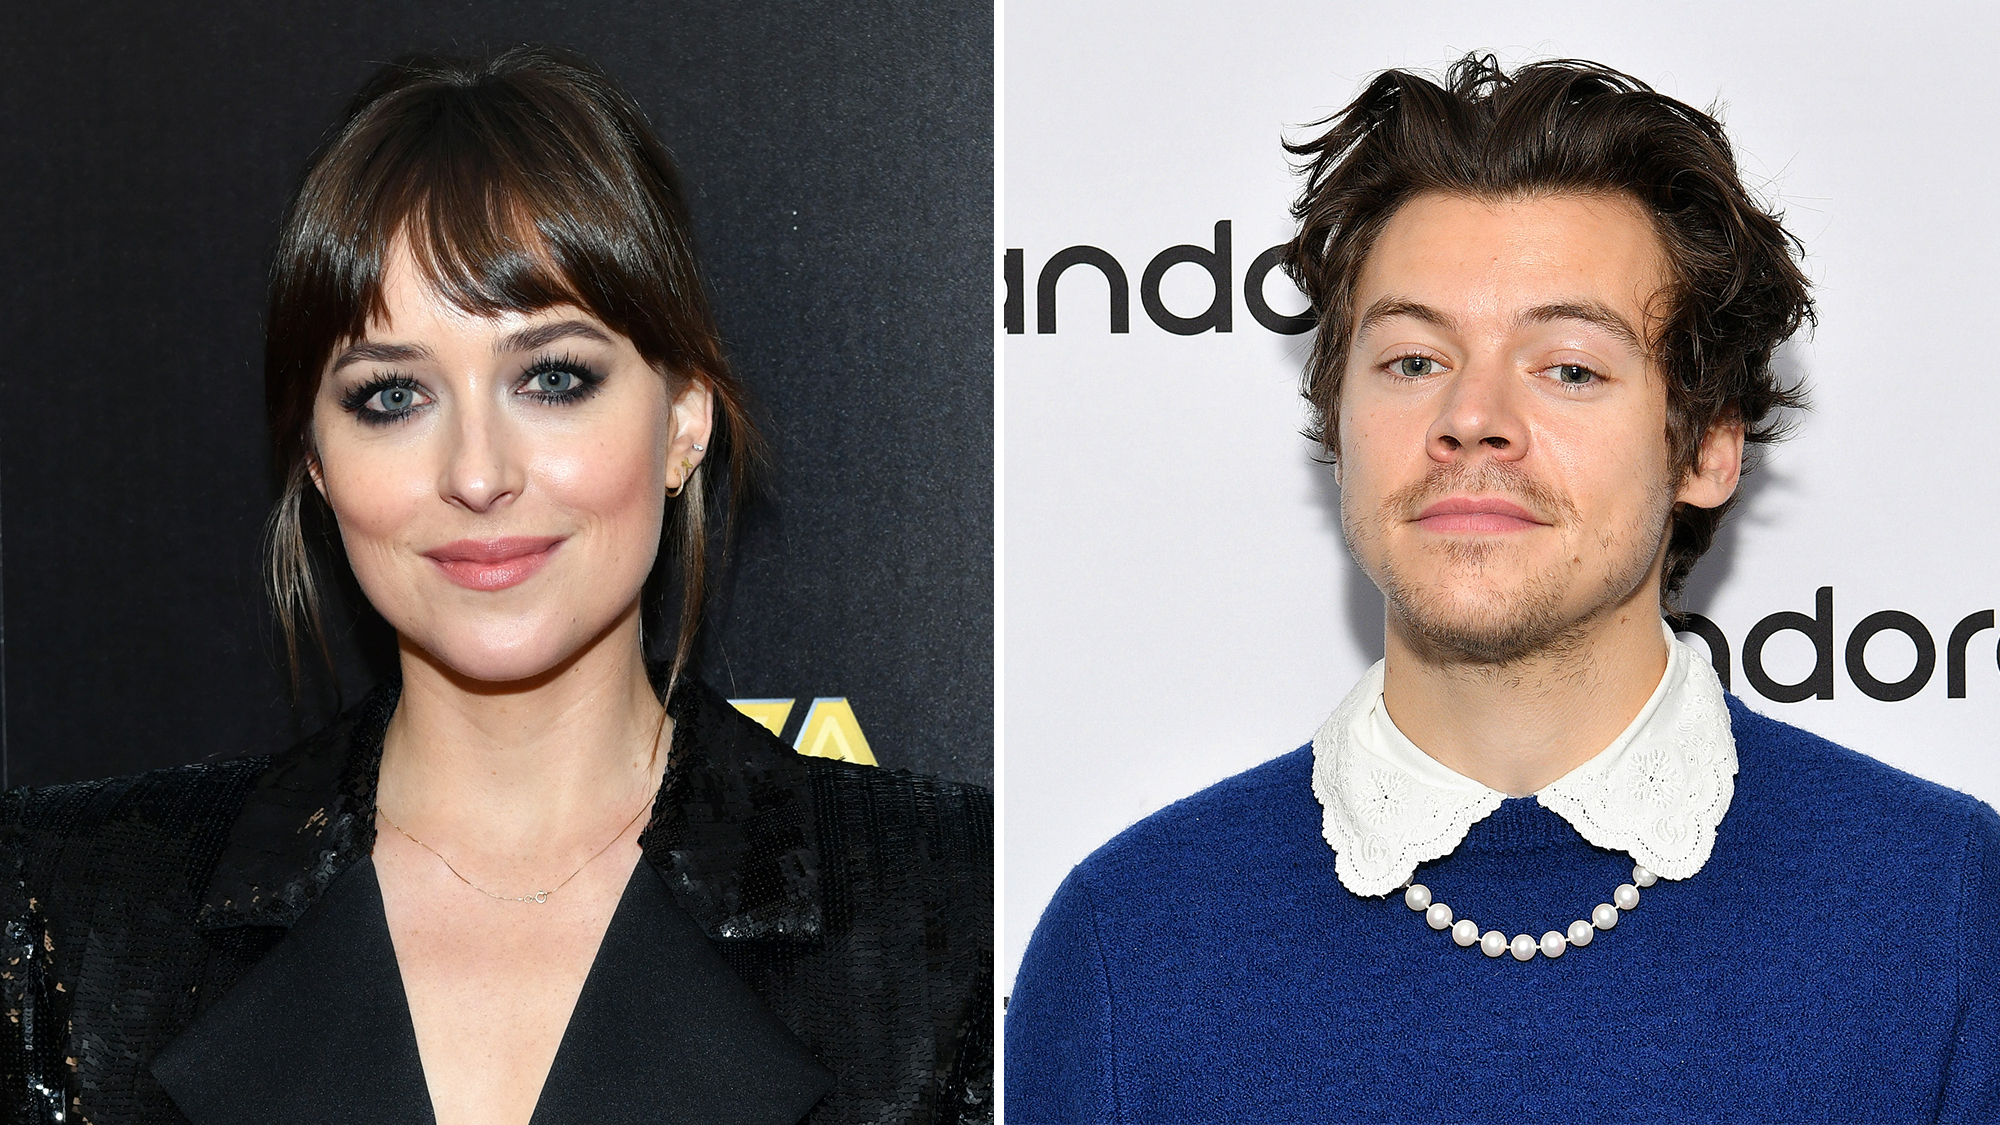 NEWS: Harry Styles Is Joining Dakota Johnson in a New Movie